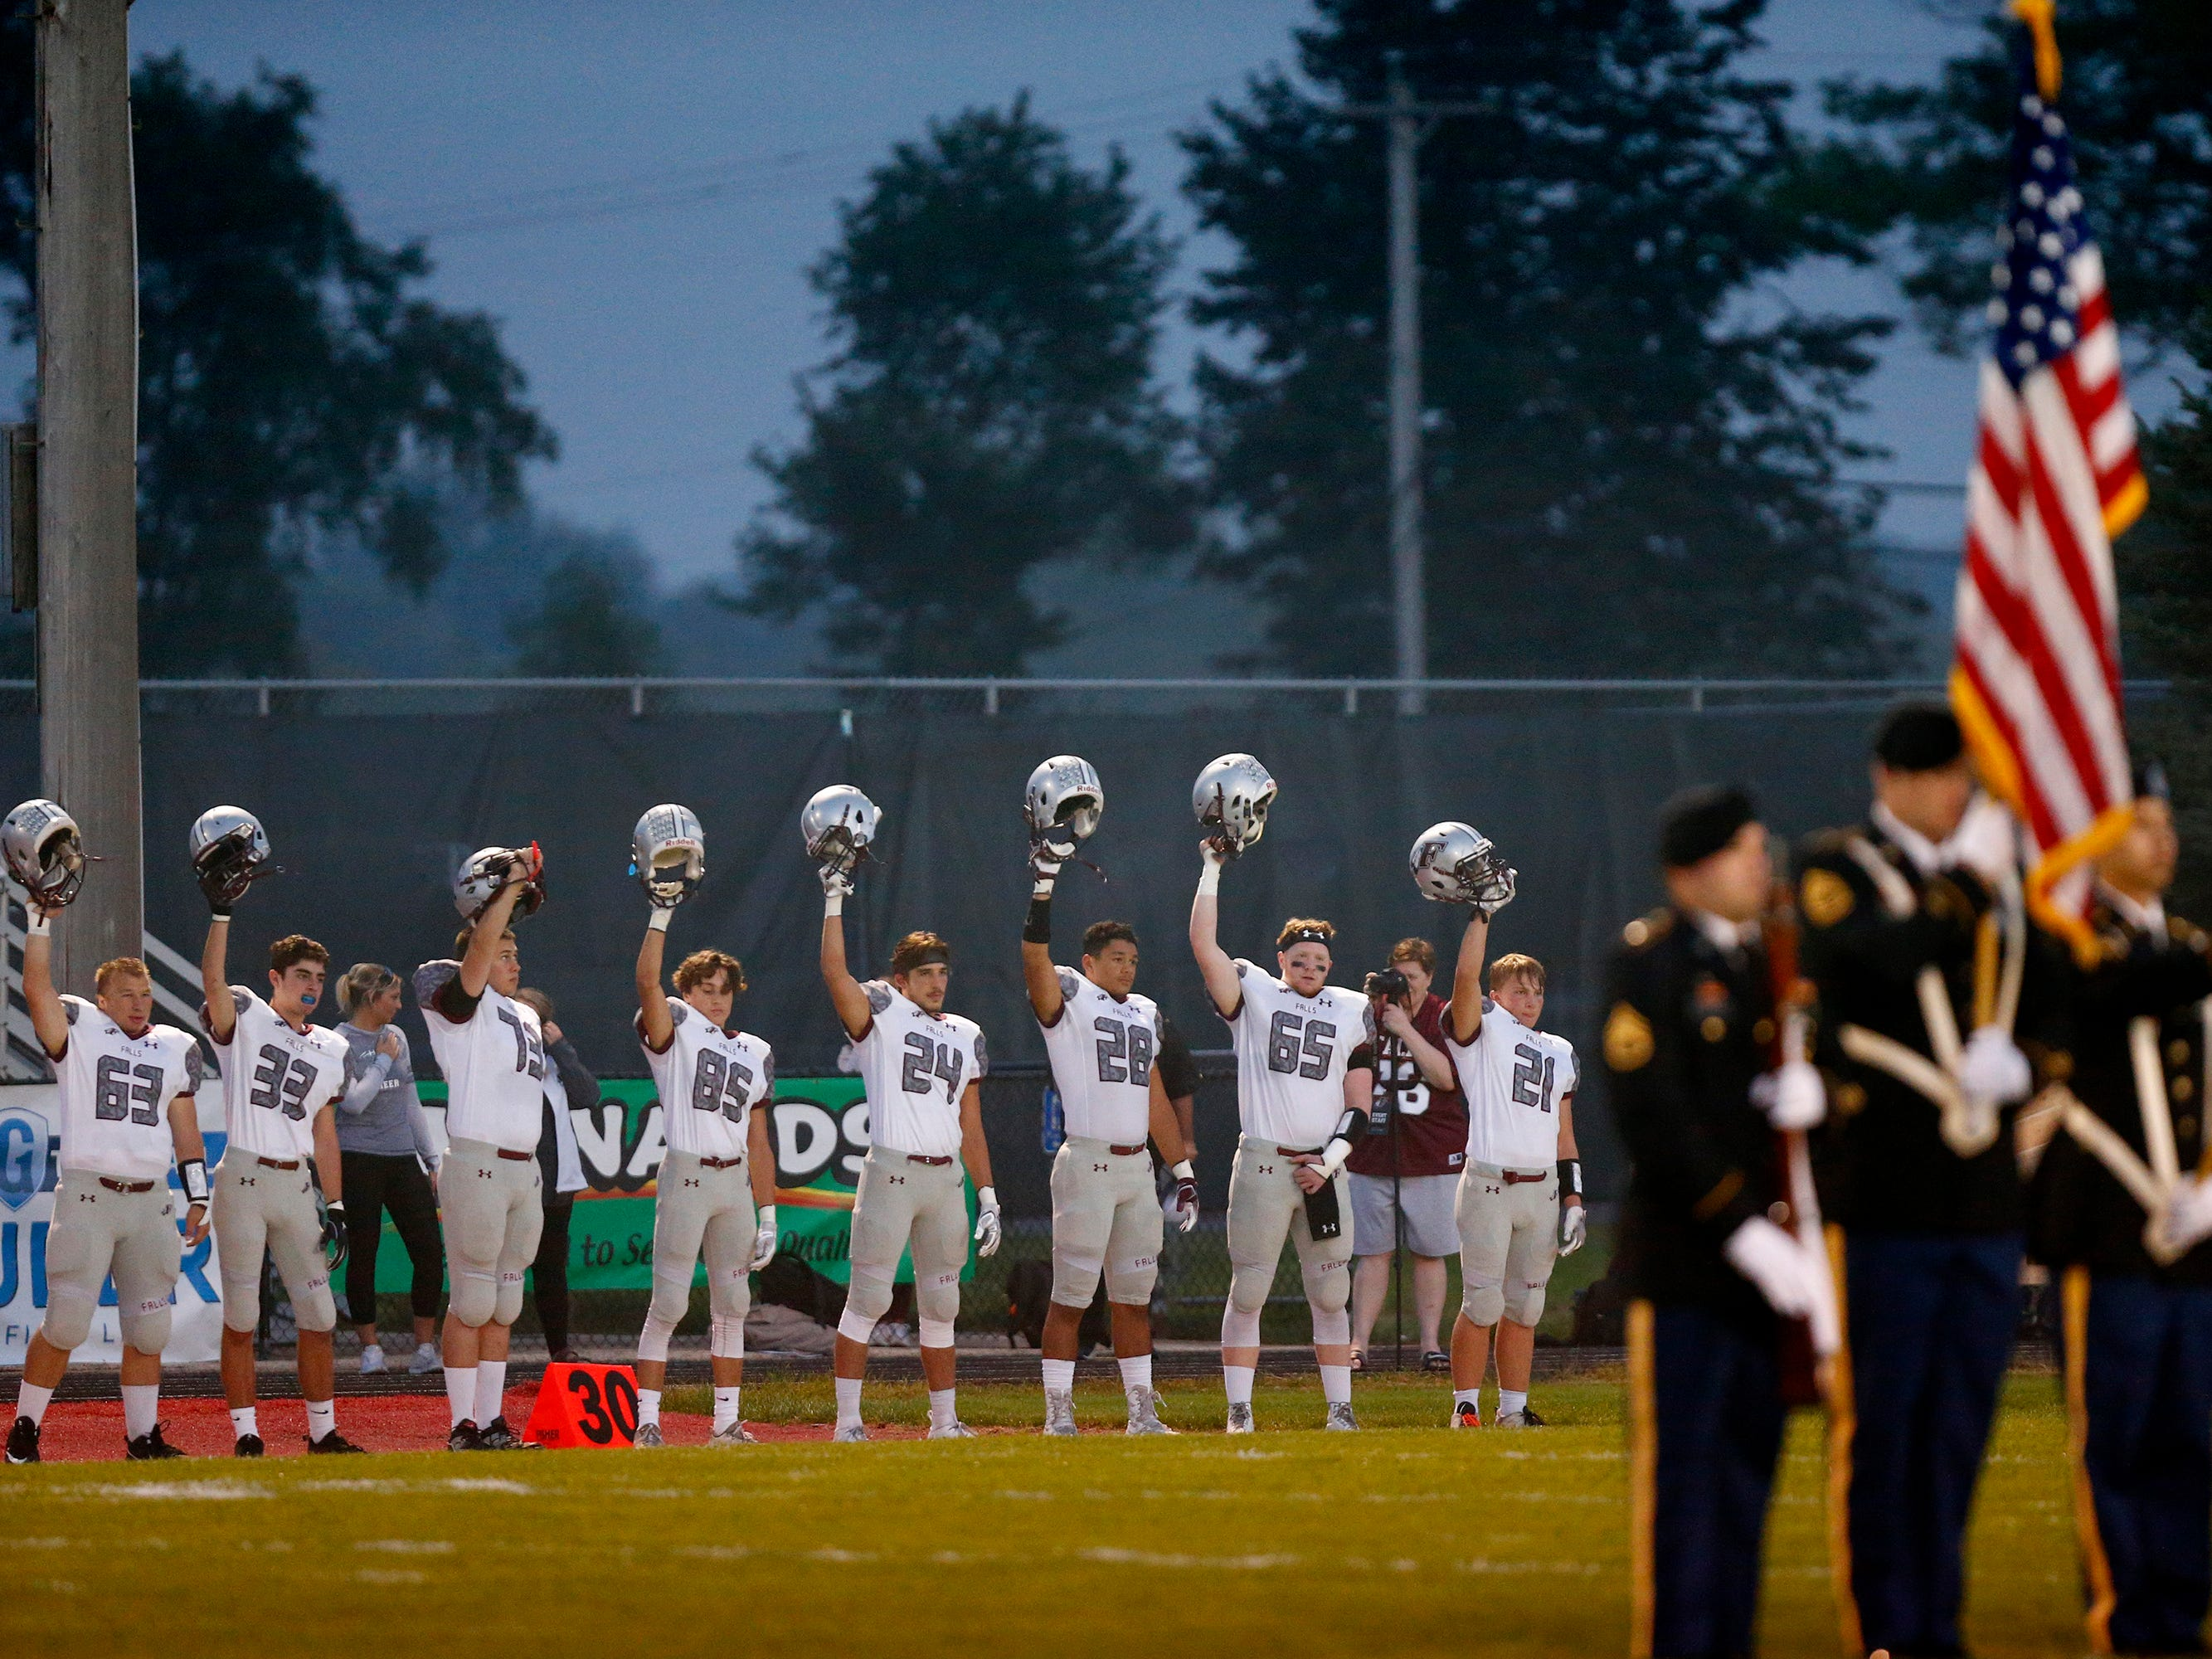 Menomonee Falls players raise their helmets at the end of the national anthem before the start of the game Sept. 20 at Sussex Hamilton.